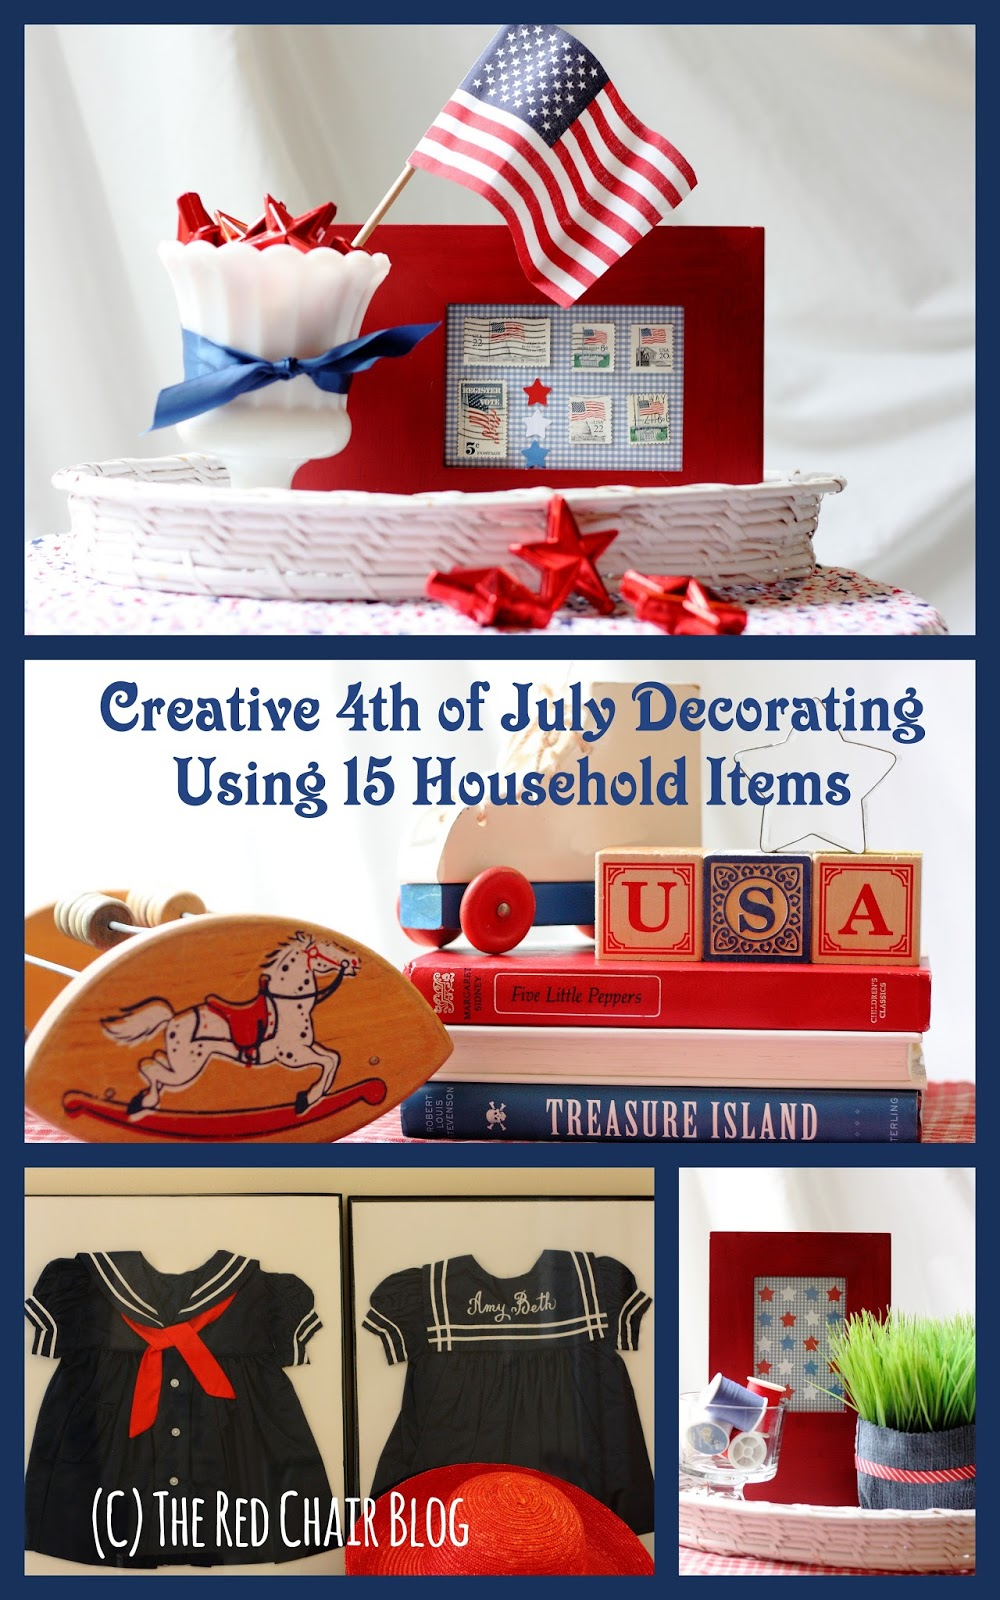 The Red Chair Blog: Creative 4th of July Decorating Ideas Using ...